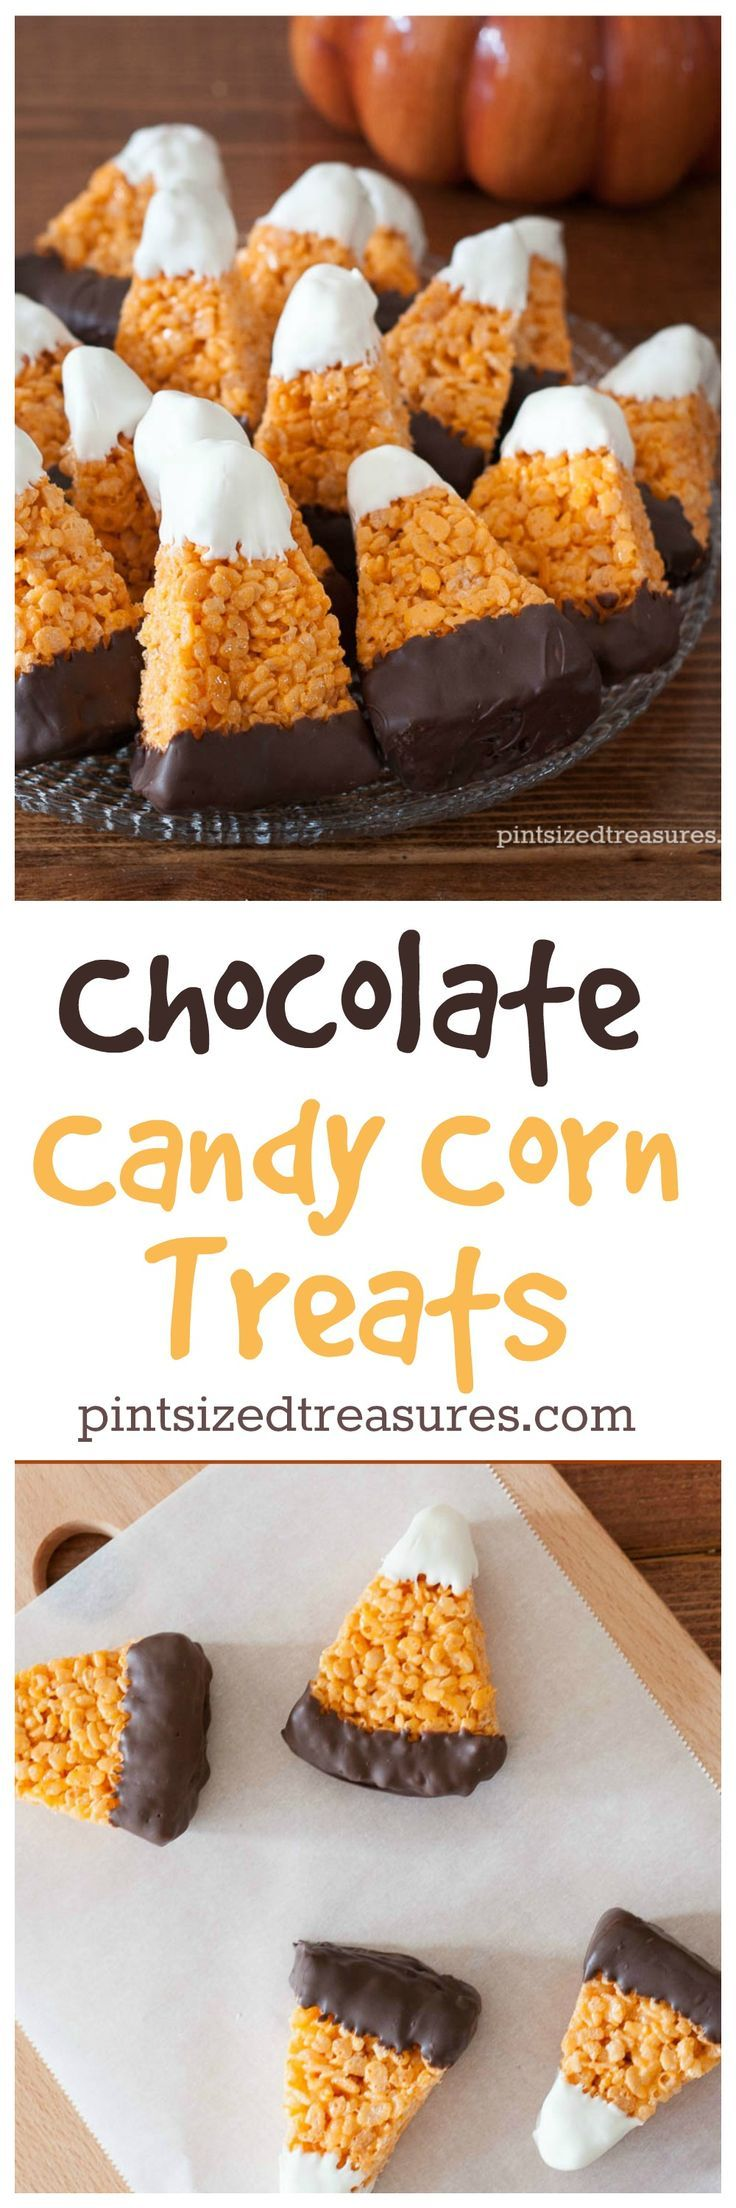 Candy Dipped Corn cheap Rice lebron sale Crispy Chocolate   Treats for